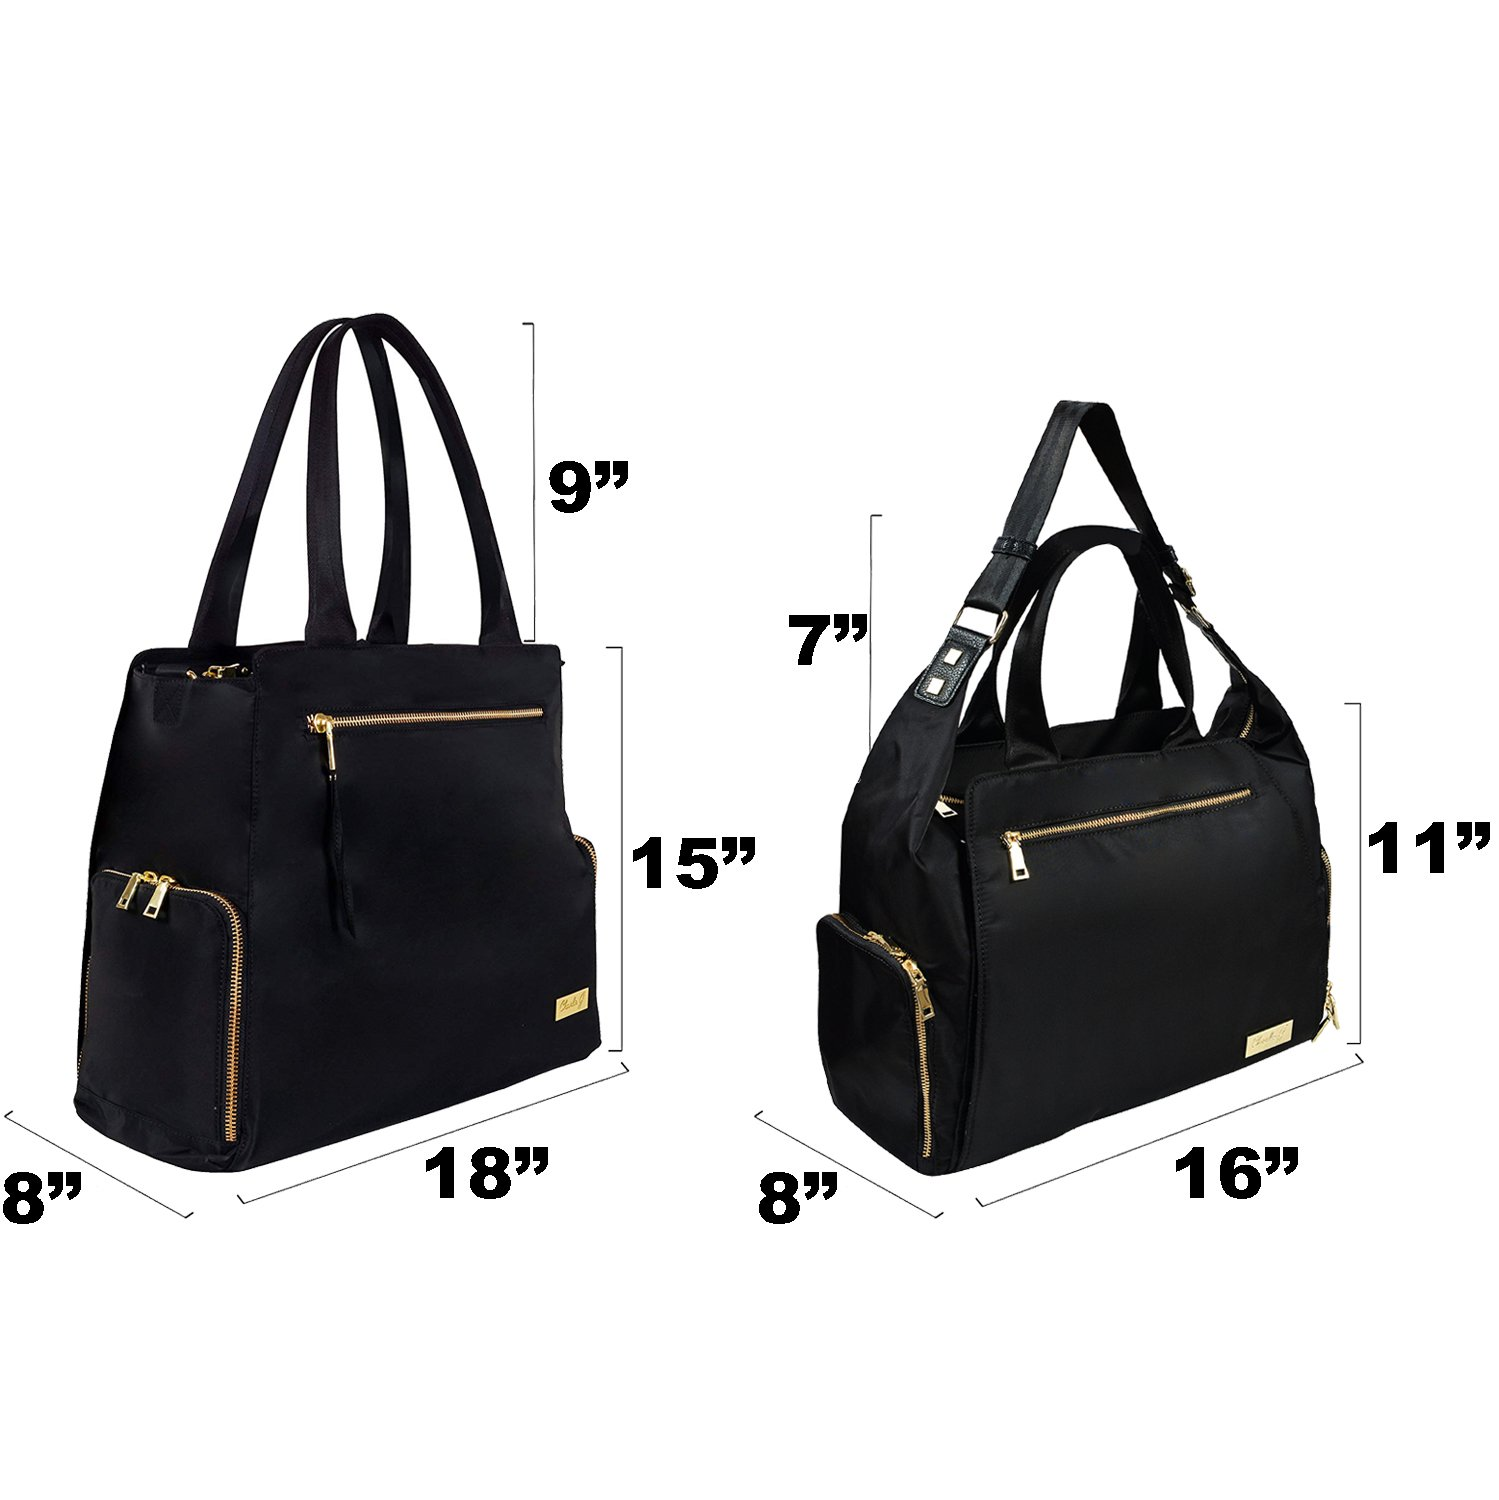 The New Yorker Breast Pump Bag by Charlie G, Black/Gold (Large) by Charlie G Bags (Image #4)